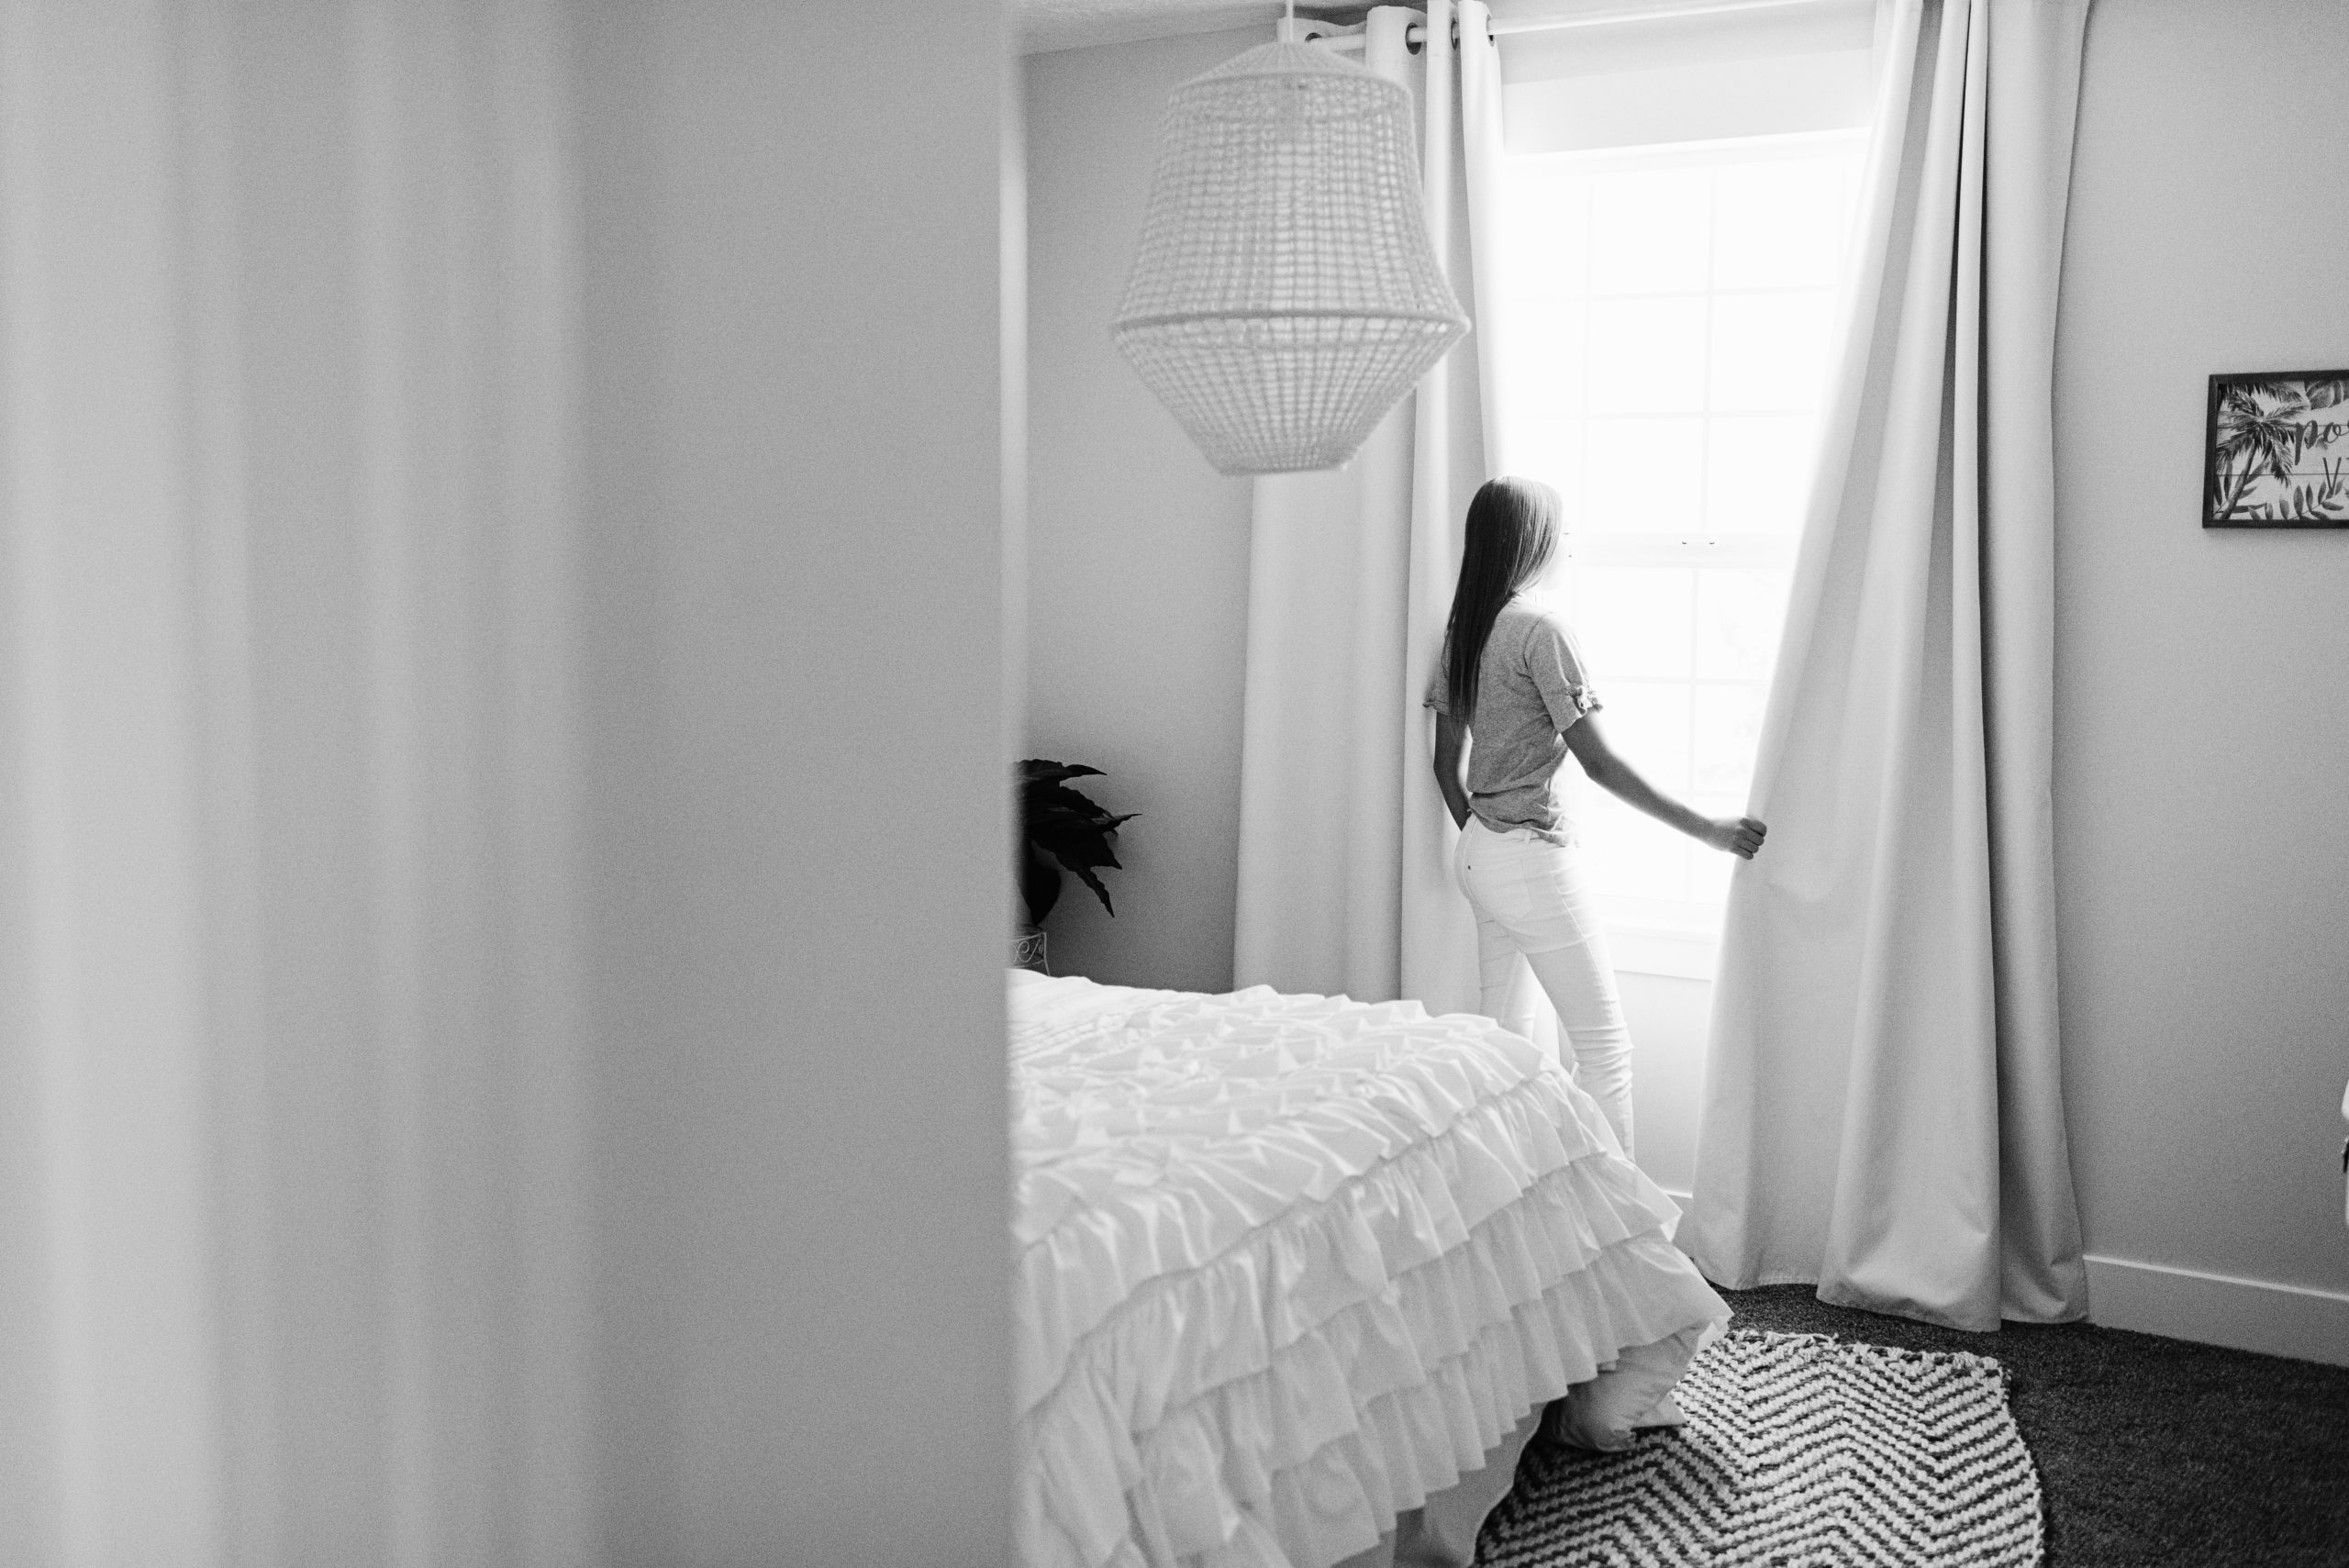 A photo of a young woman looking out a window and holding the curtain.